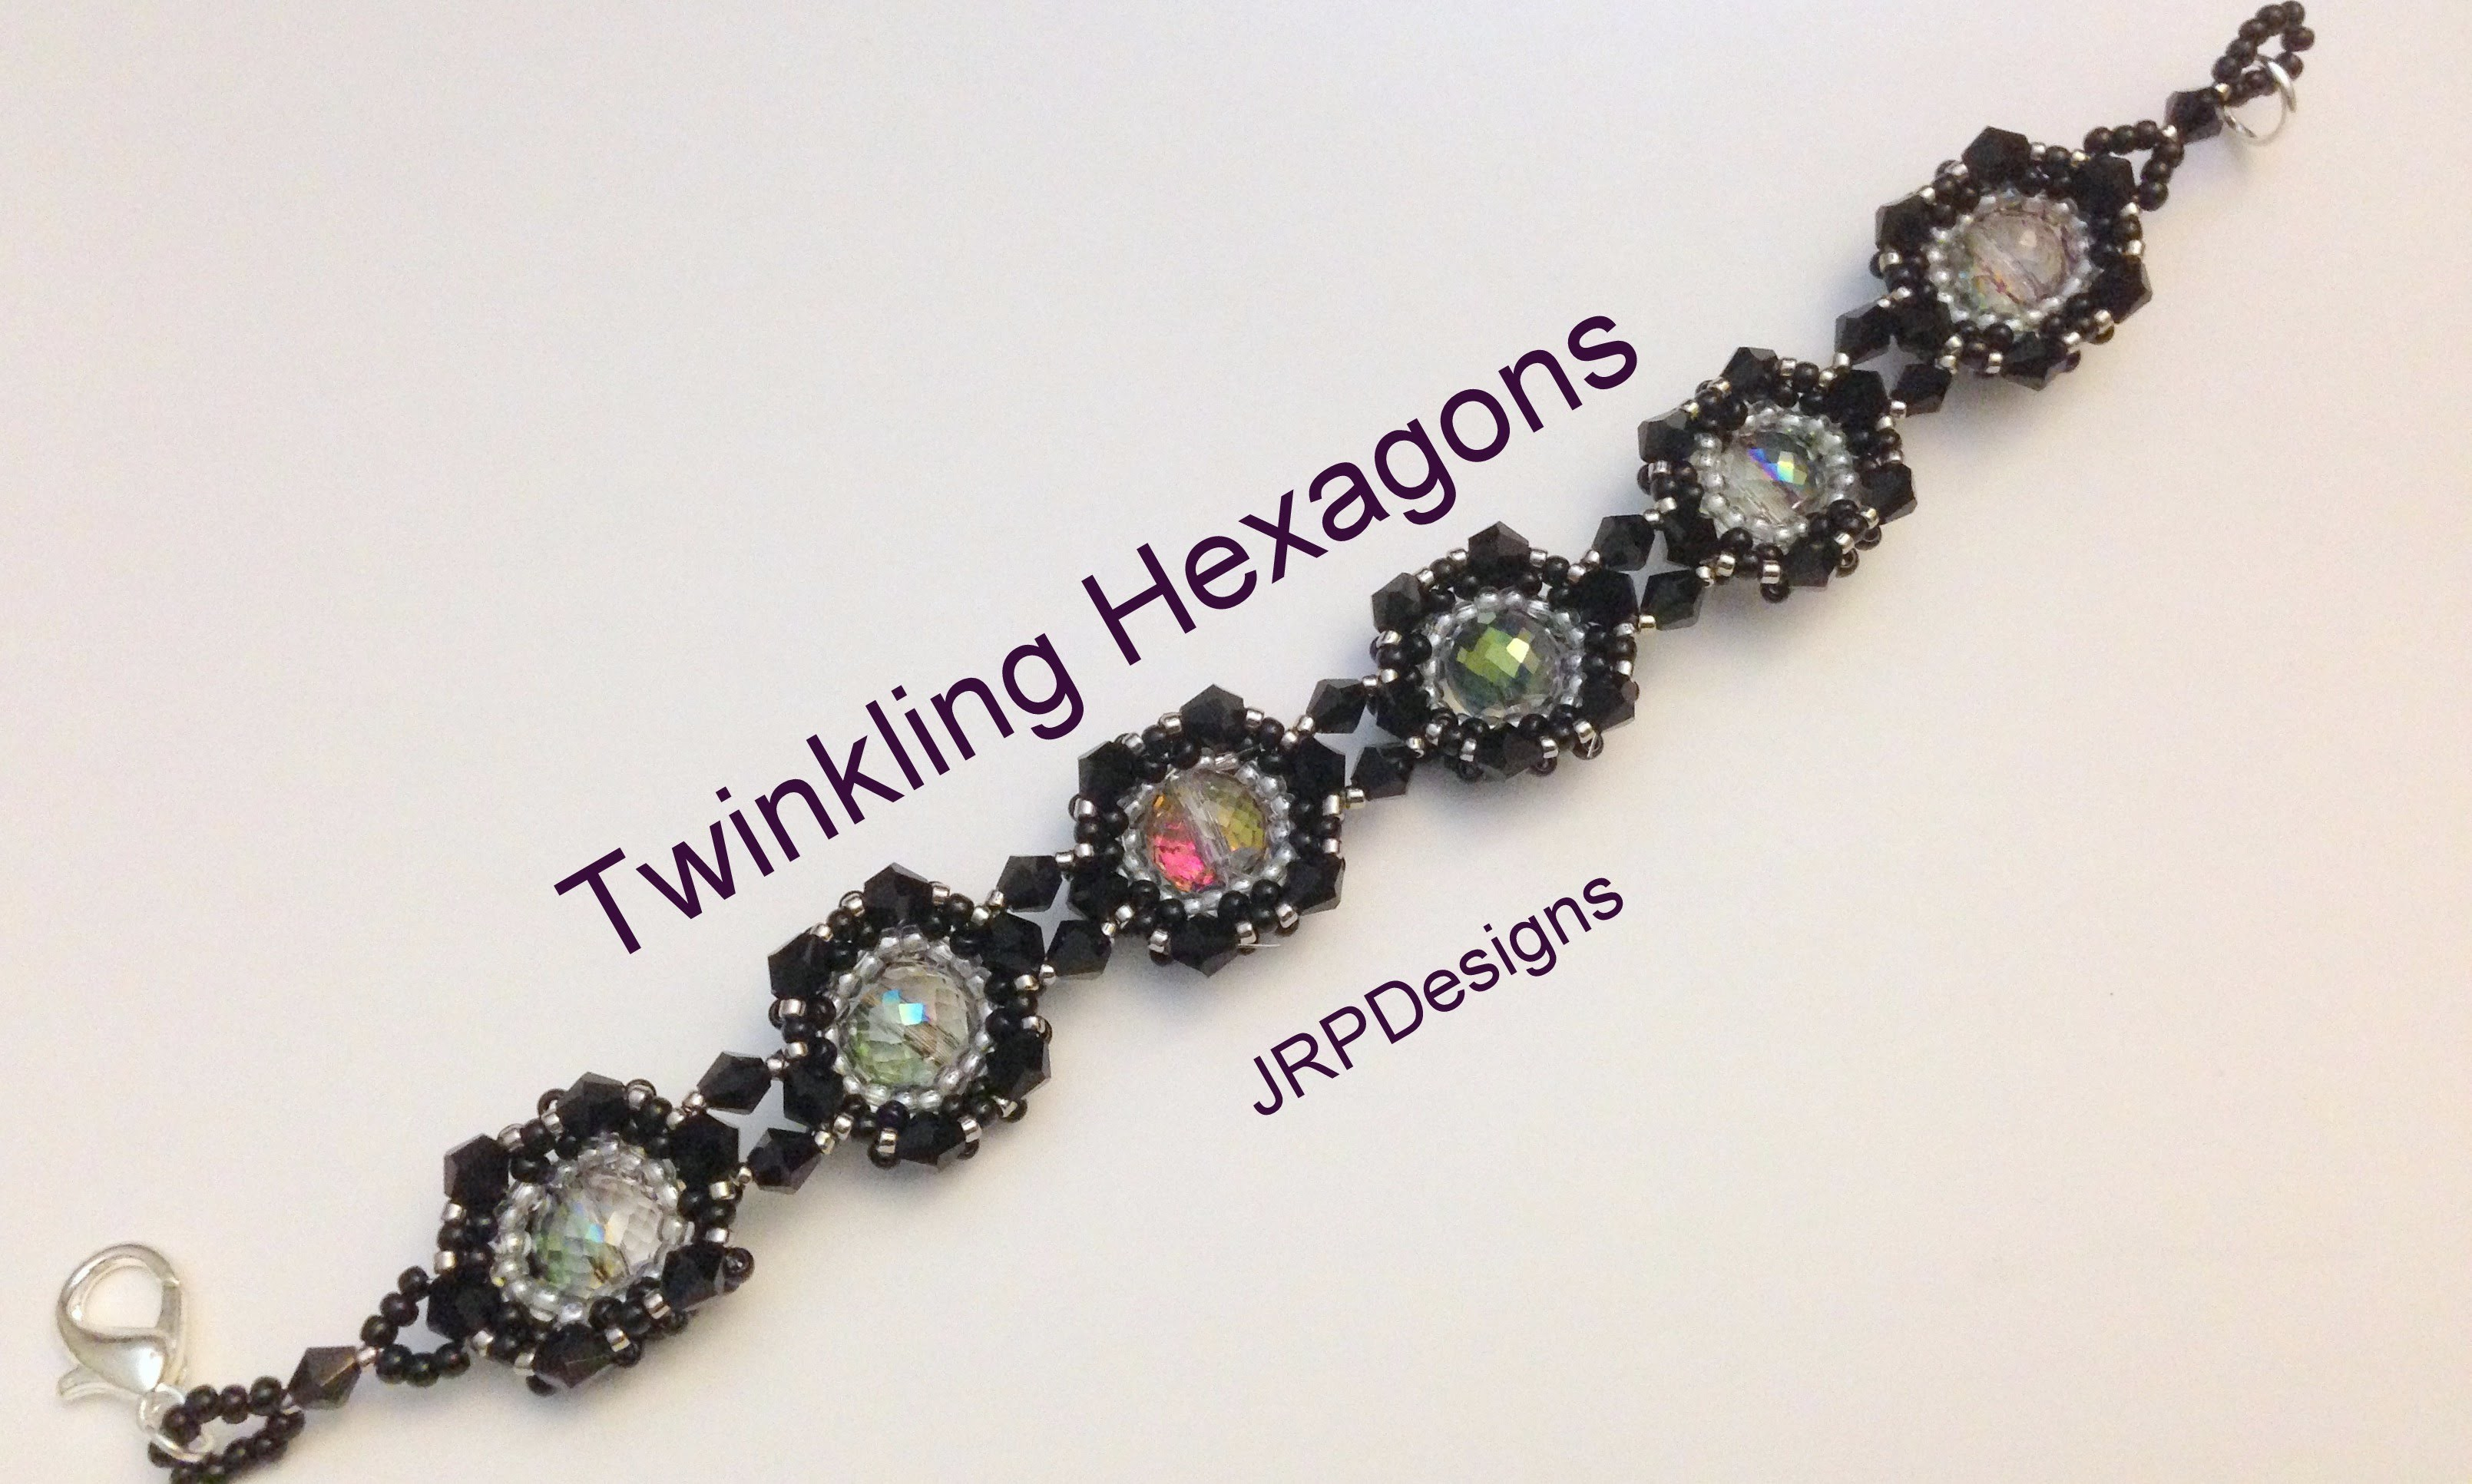 Twinkling Hexagons Bracelet--Intermediate Level Part 1